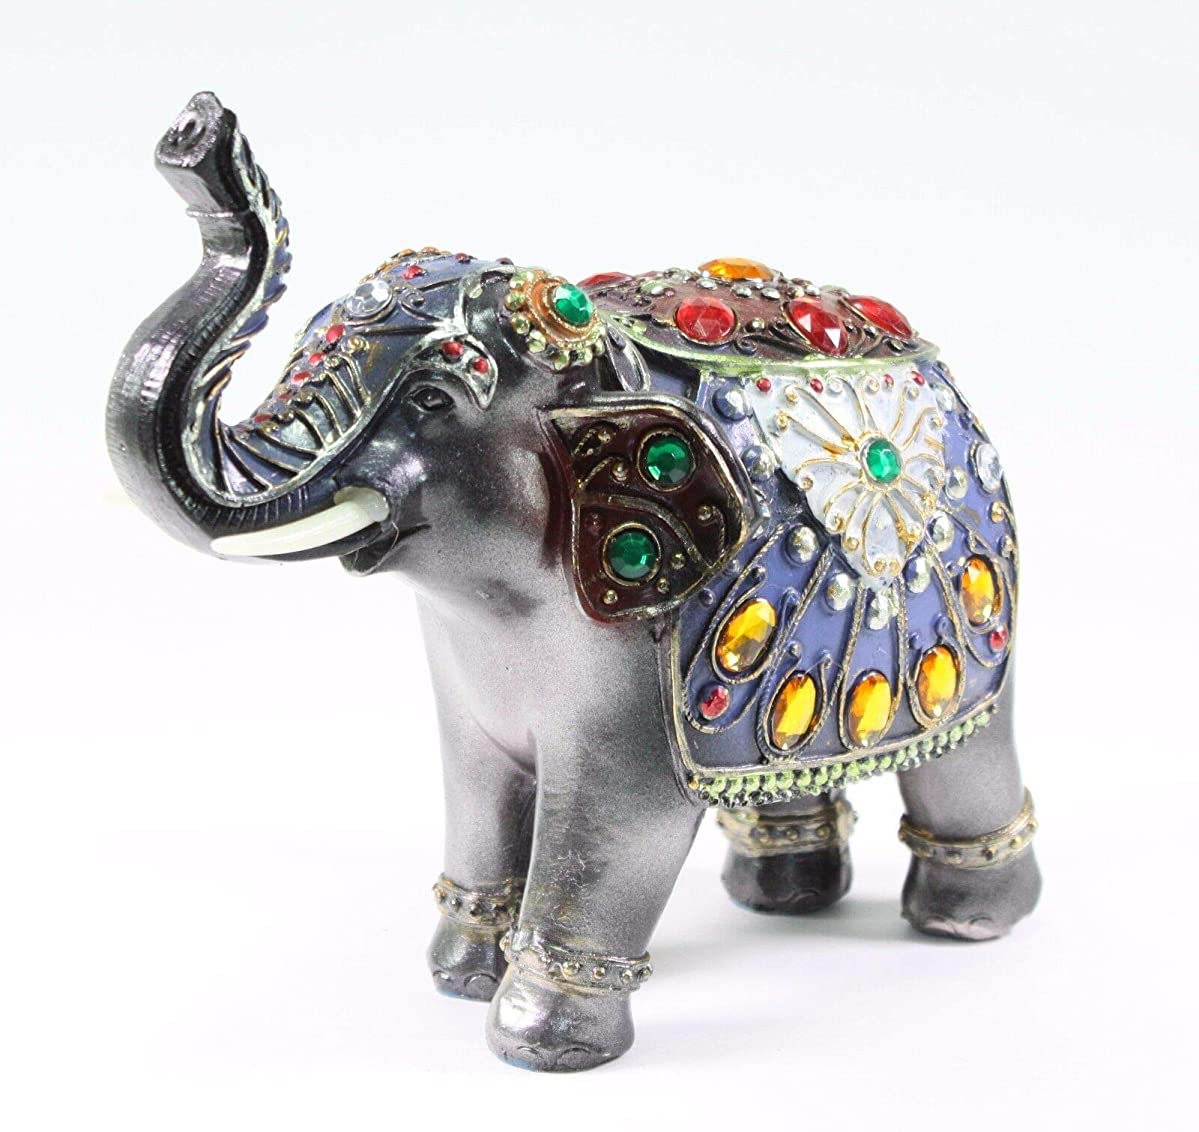 Feng Shui Elephant Trunk Statue Lucky Figurine Gift Home Decor Dark Gray 7